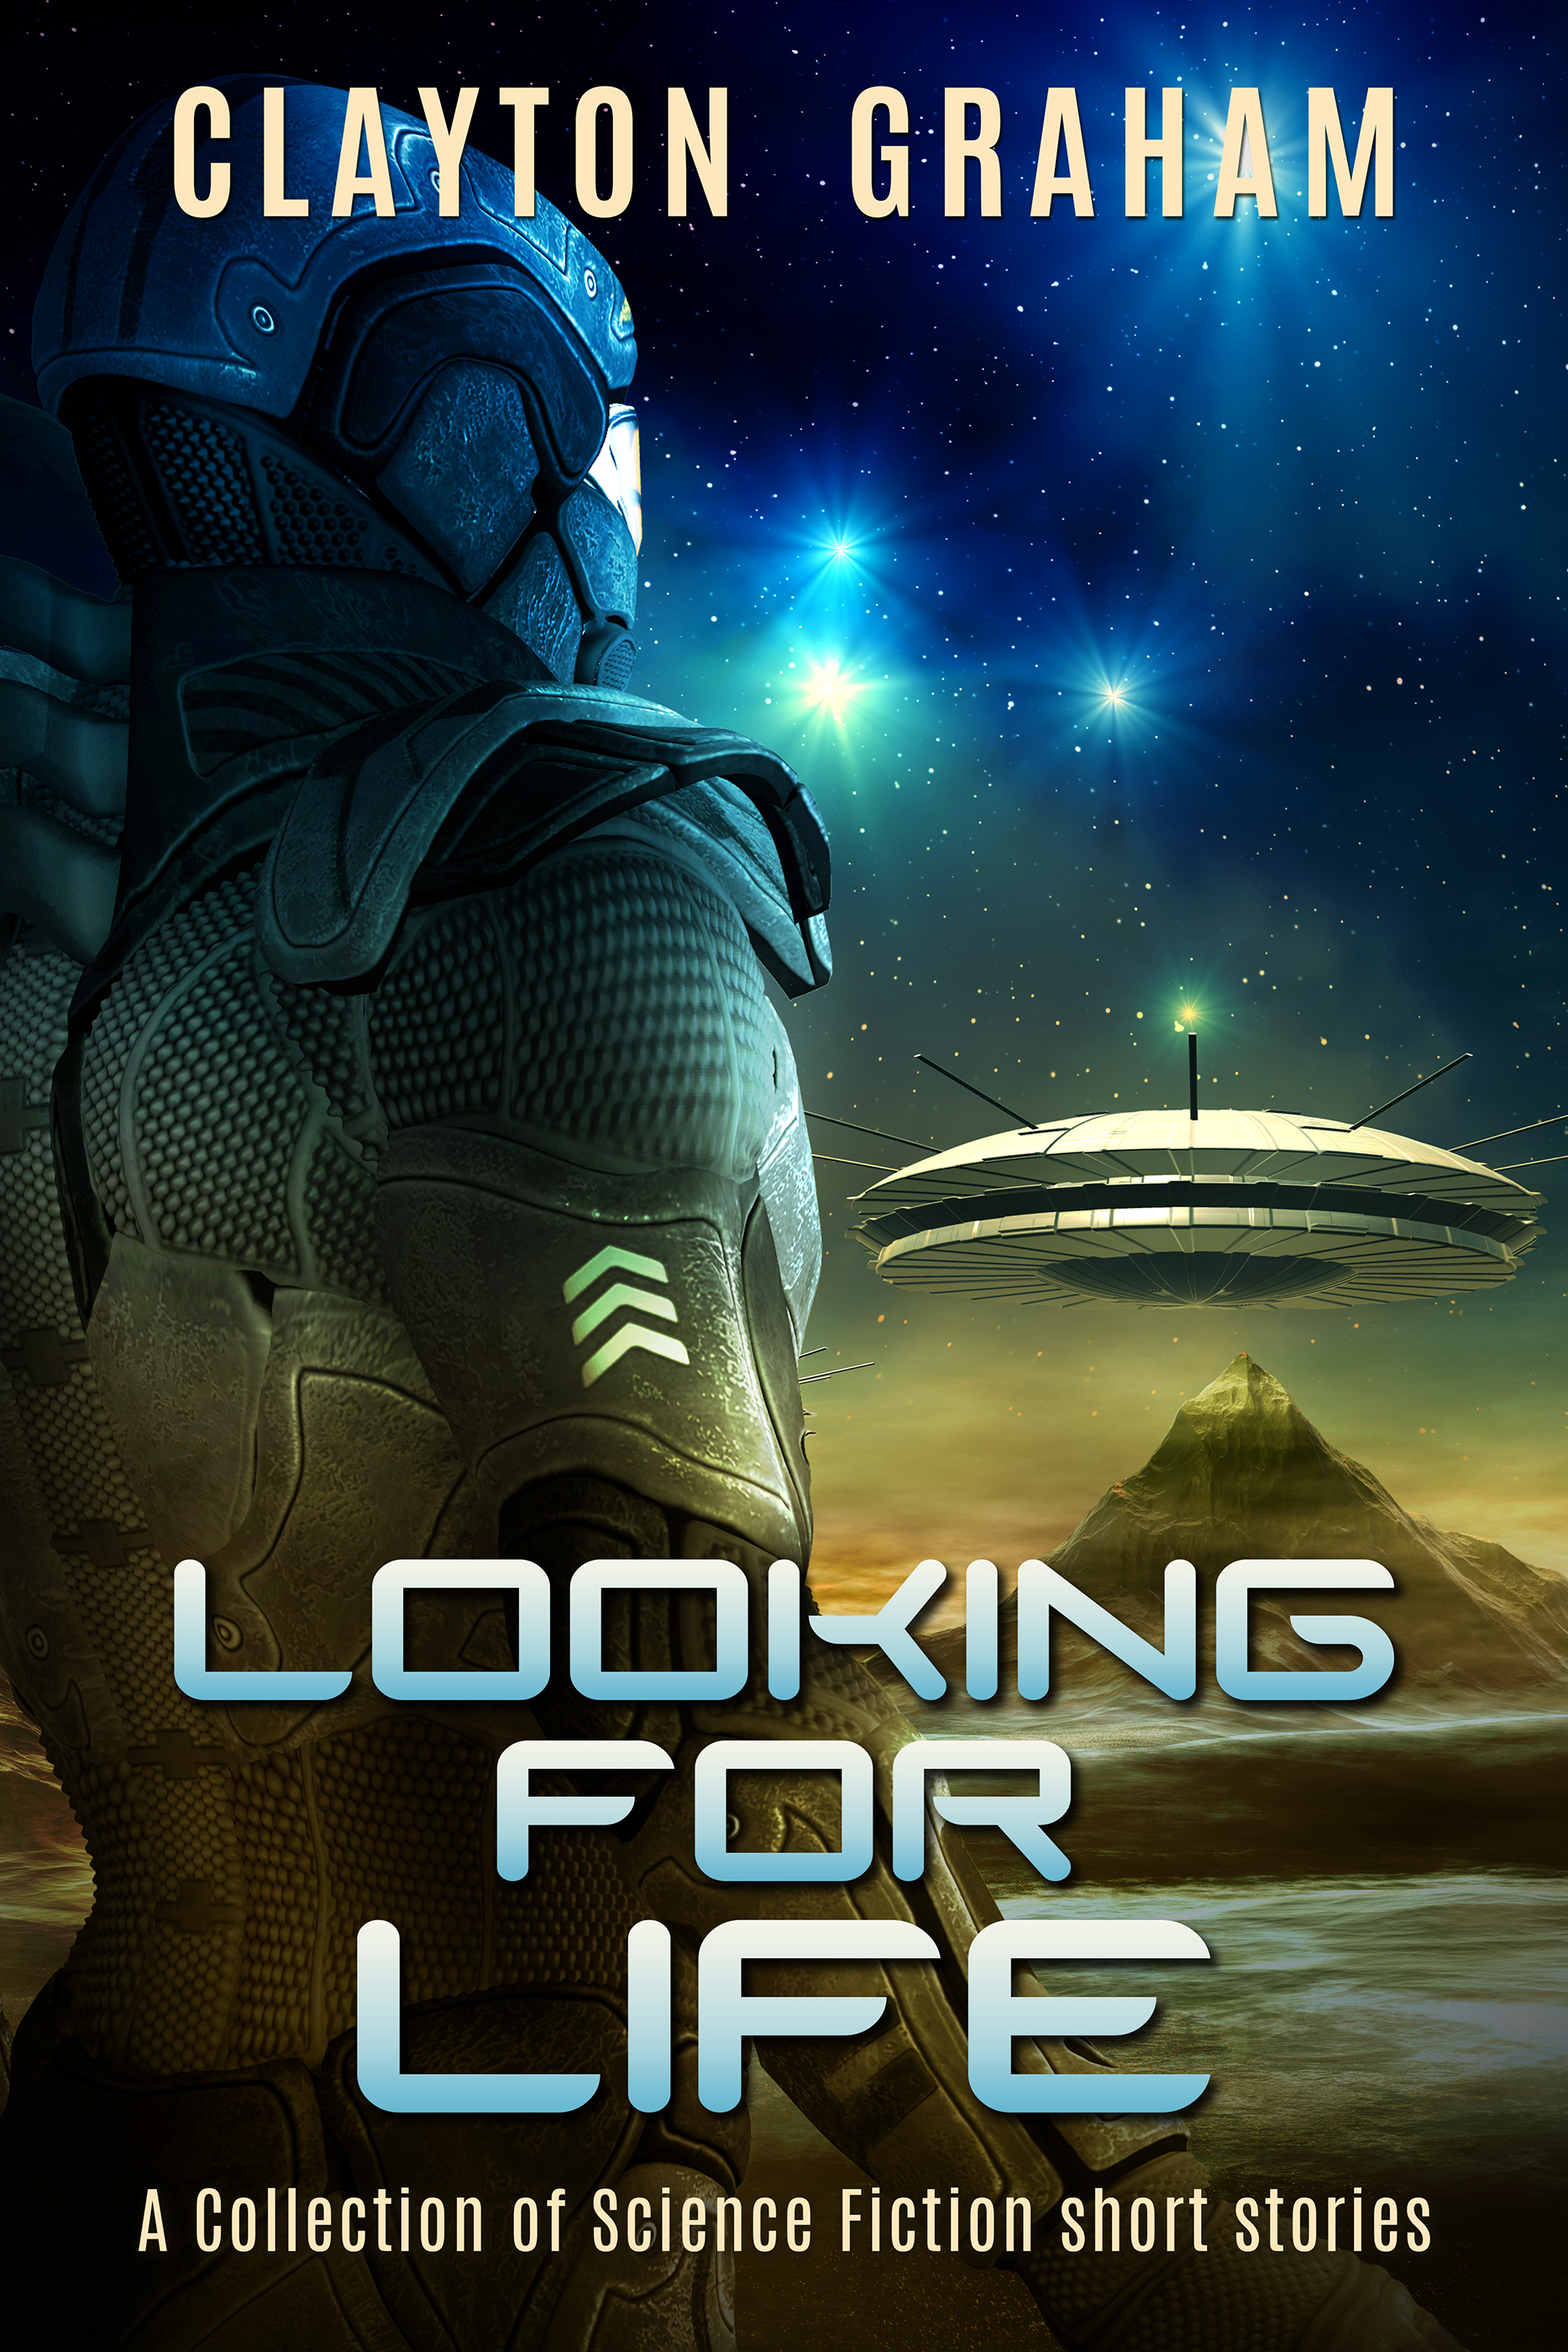 'Looking for Life' by Clayton Graham